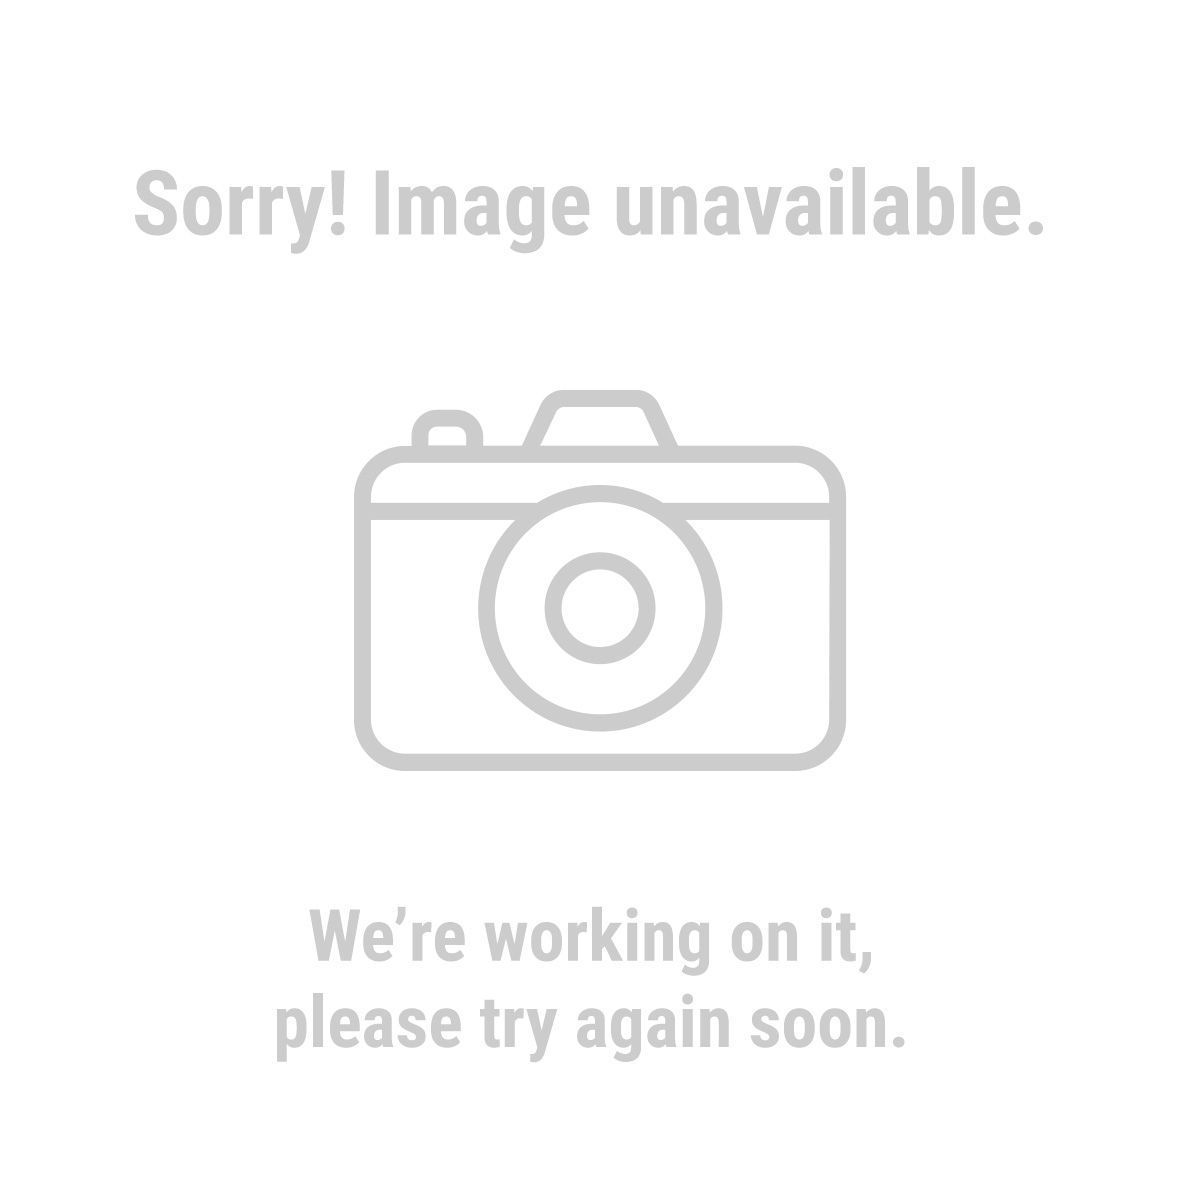 Chicago Electric Welding 61369 Adjustable Steel Welding Table